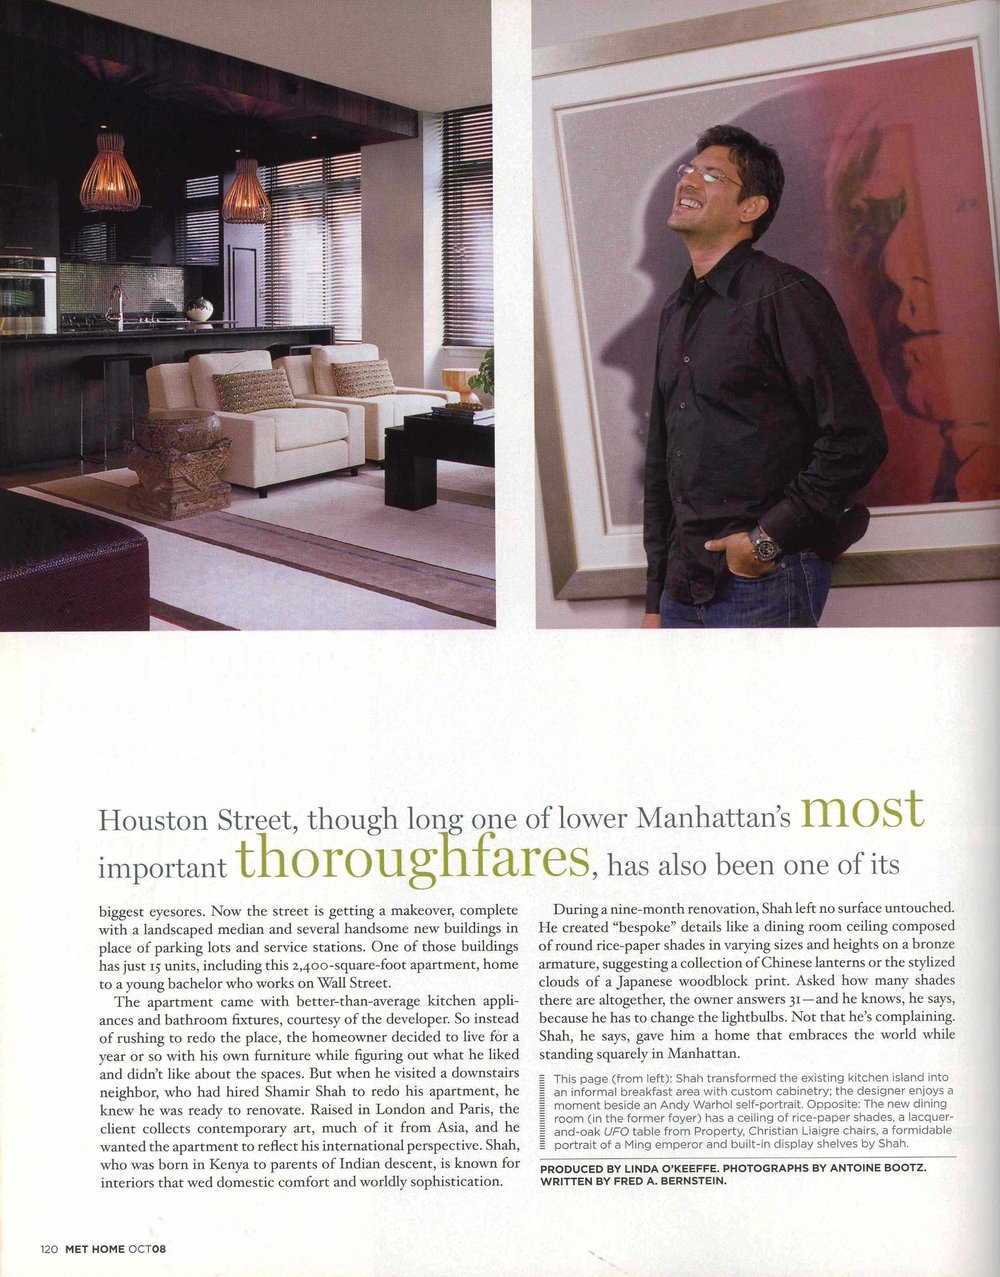 Met Home_Oct 08_Full Article 2_Page_04.jpg